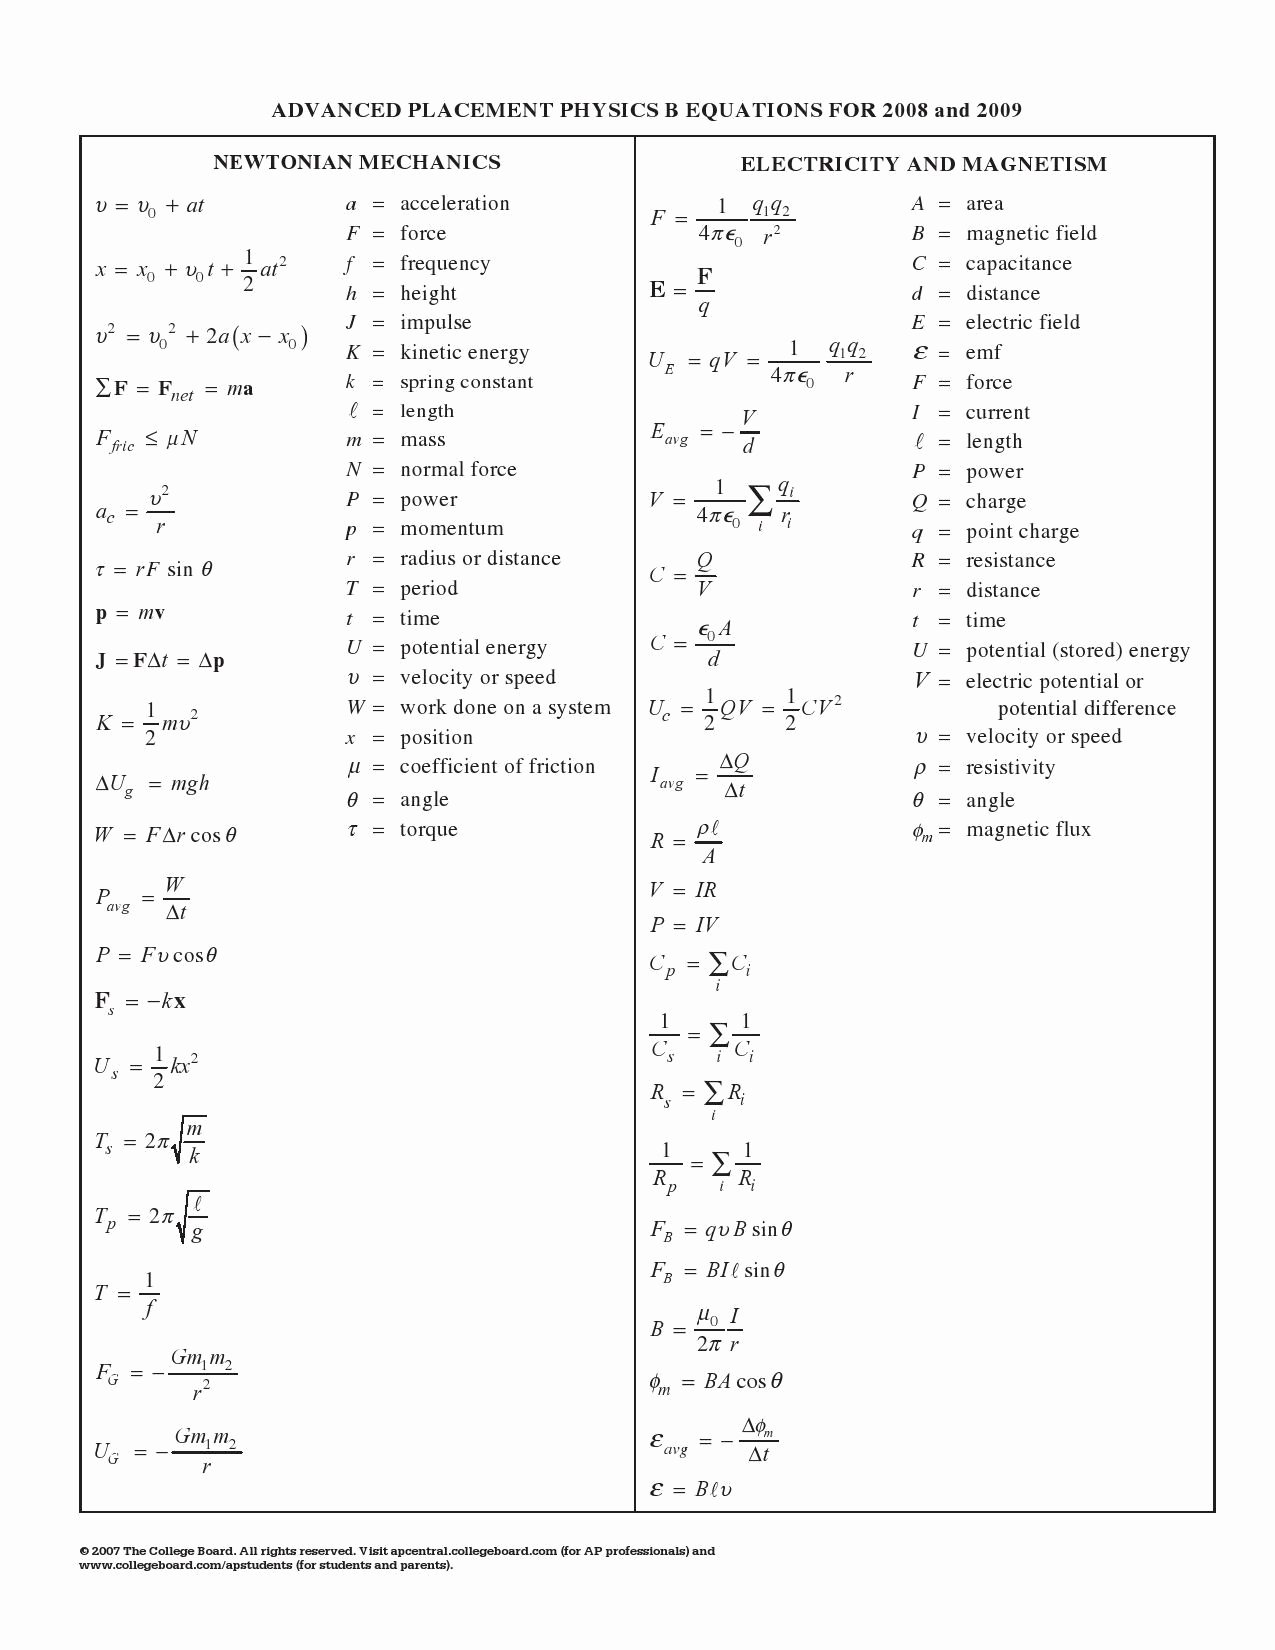 Bill Nye Magnetism Worksheet Answers Lovely Bill Nye Magnetism Worksheet Answers